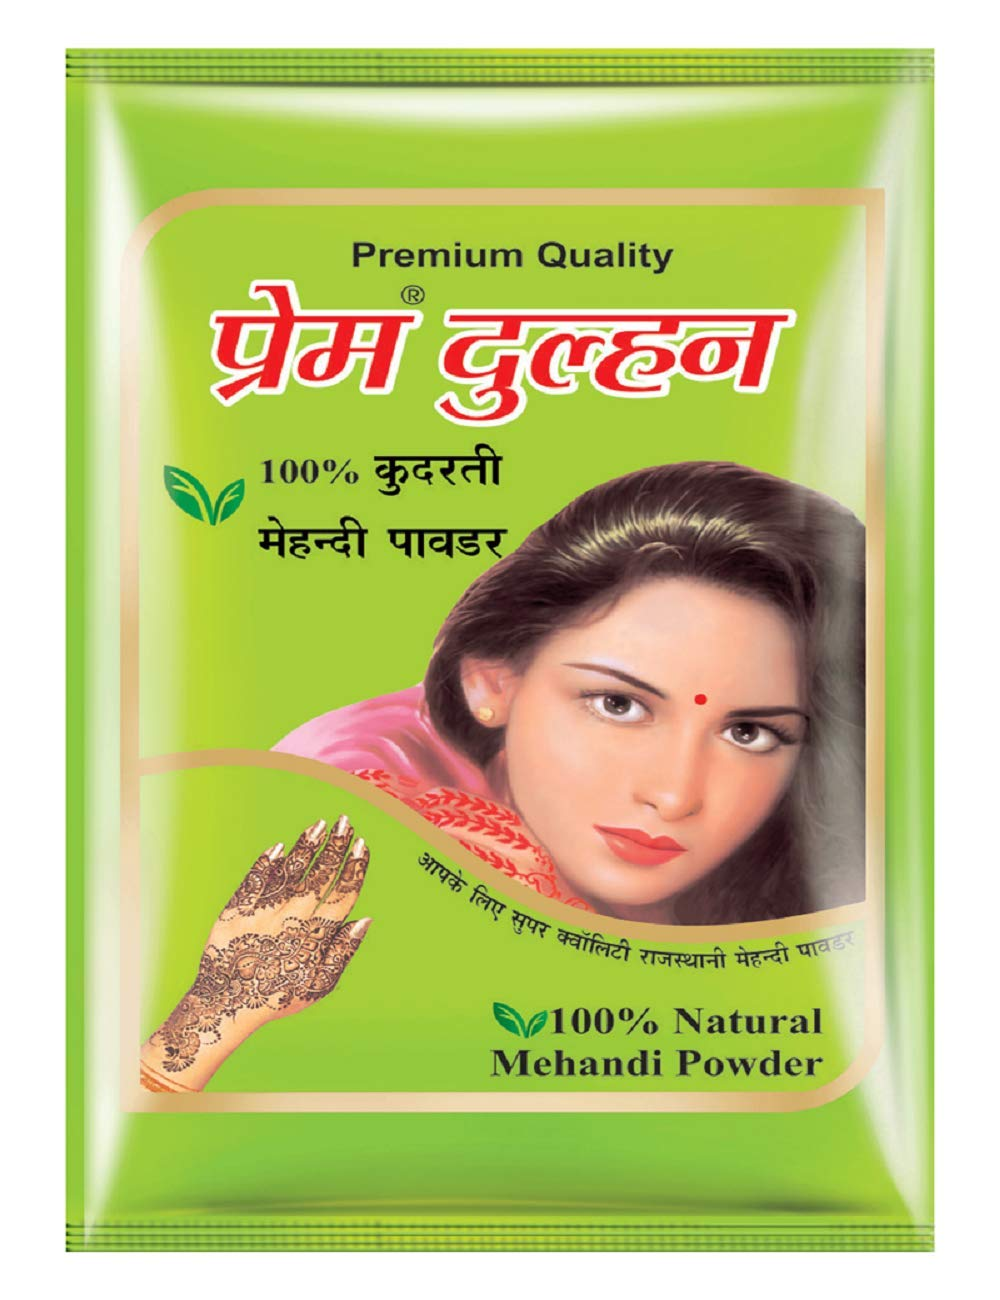 Prem Dulhan 100% Natural Mehandi Powder -1KG product image